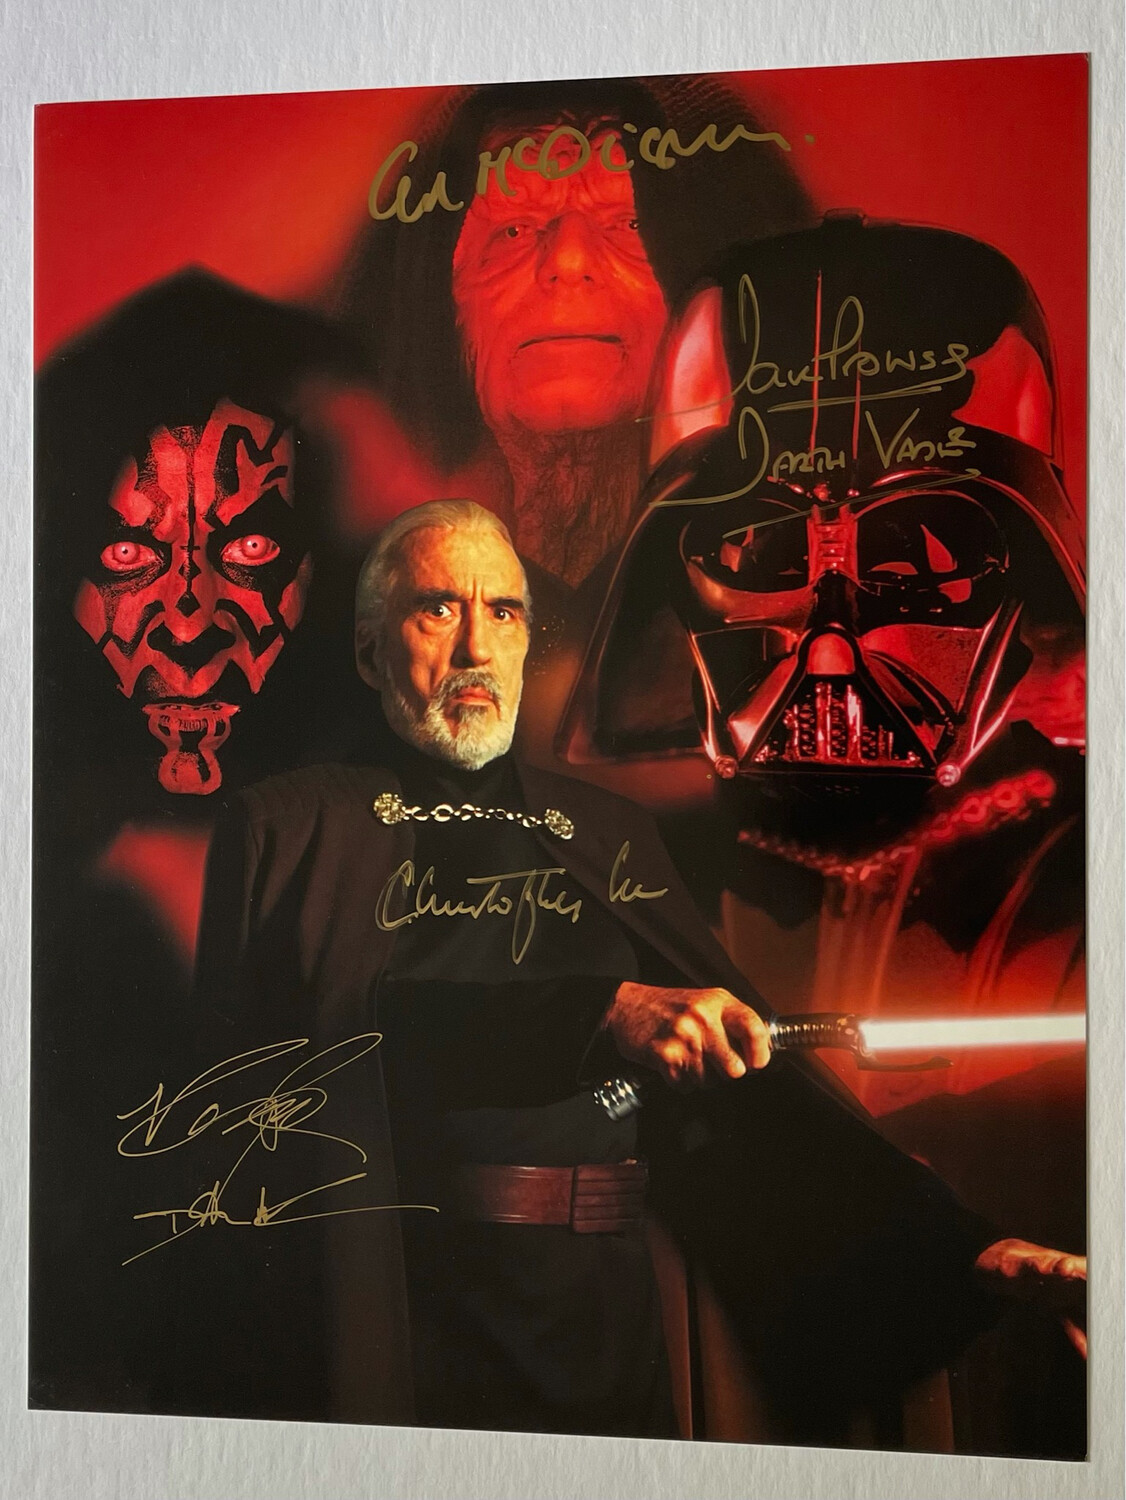 11X14 DARTH VADER SIGNED BY DAVE PROWSE, CHRISTOPHER LEE, IAN MCDIARMID, AND RAY PARK